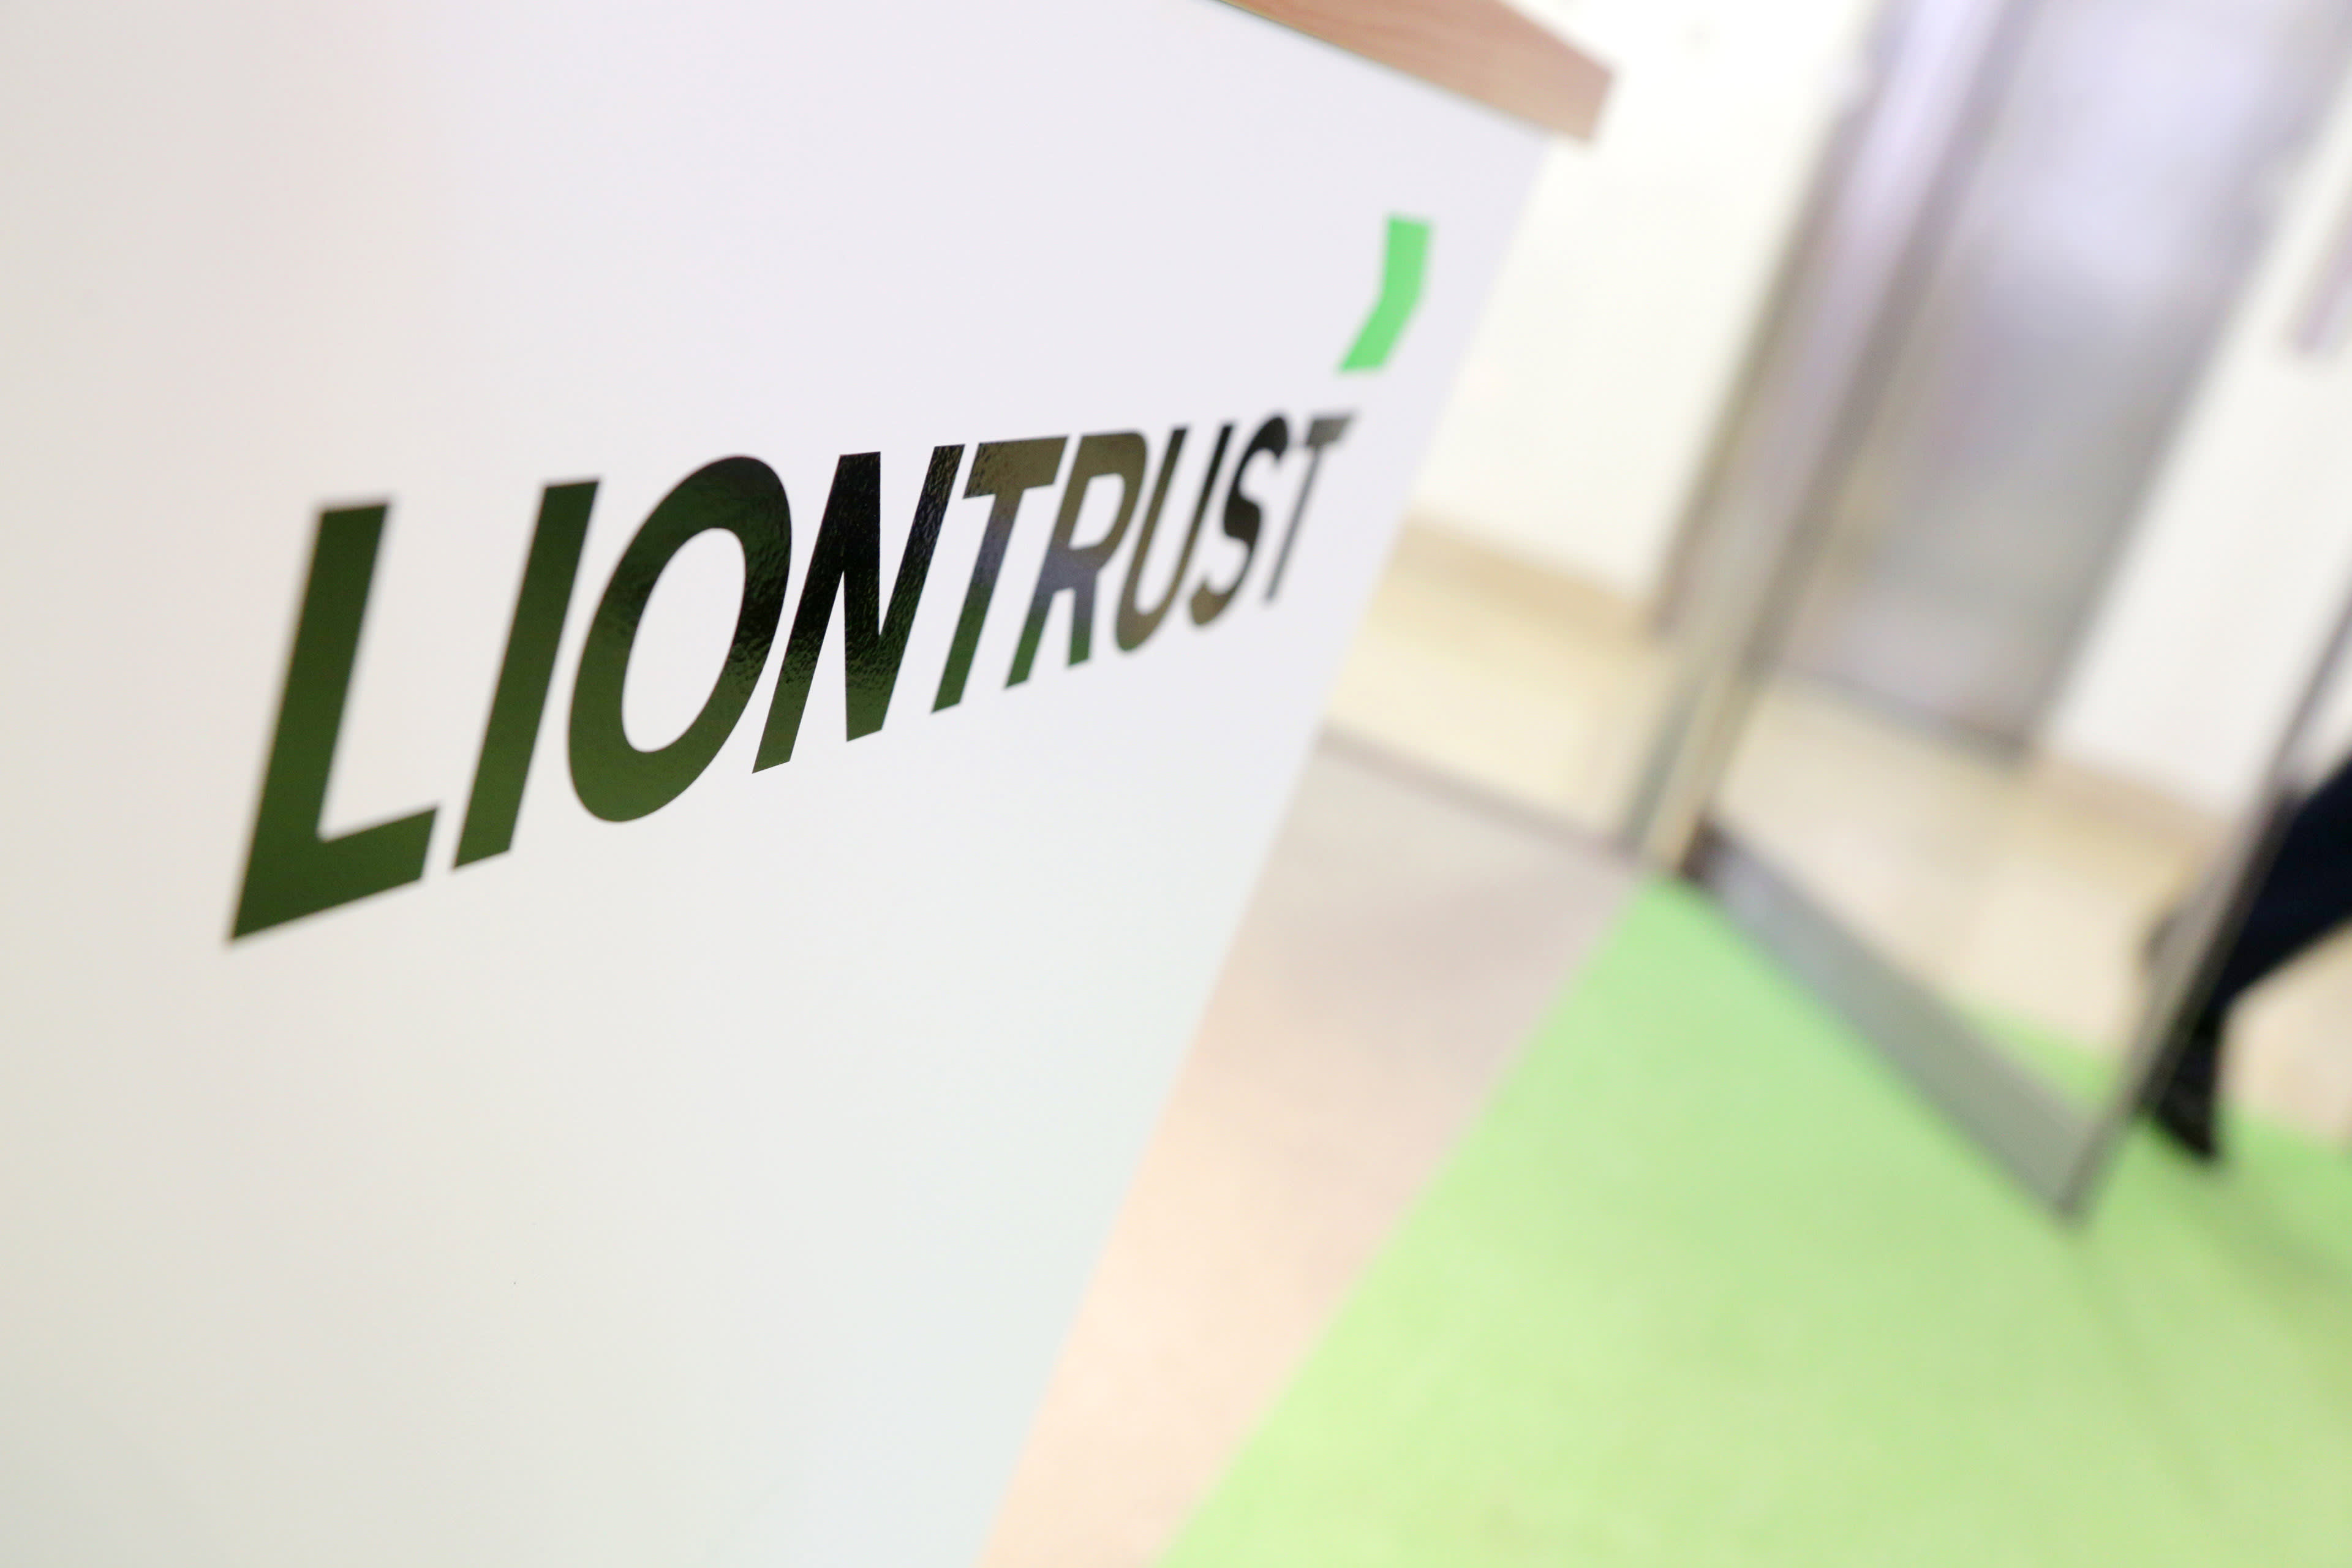 Sustainable investing drives £723m rise in Liontrust assets